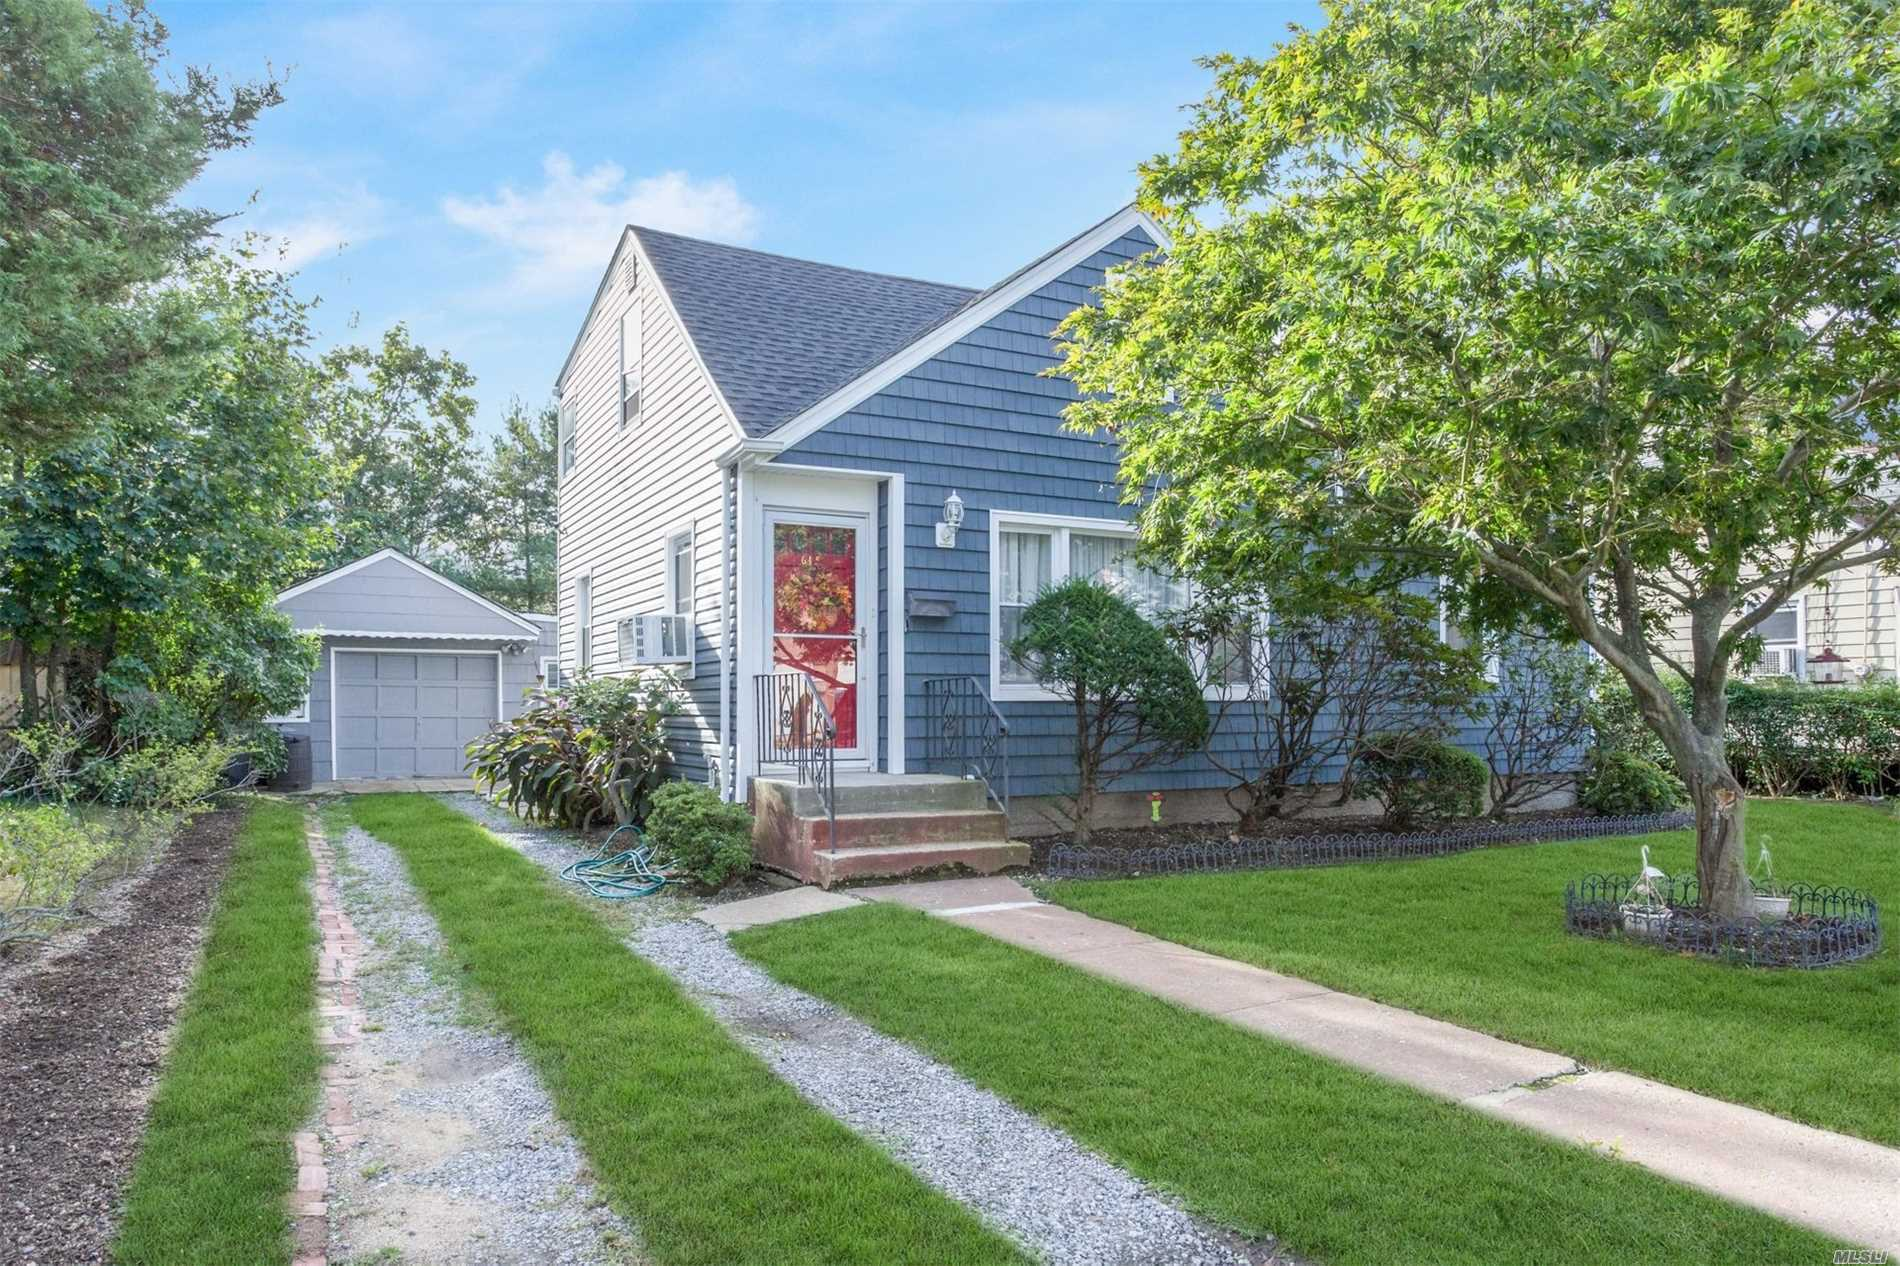 615 Winthrop Dr - Uniondale, New York